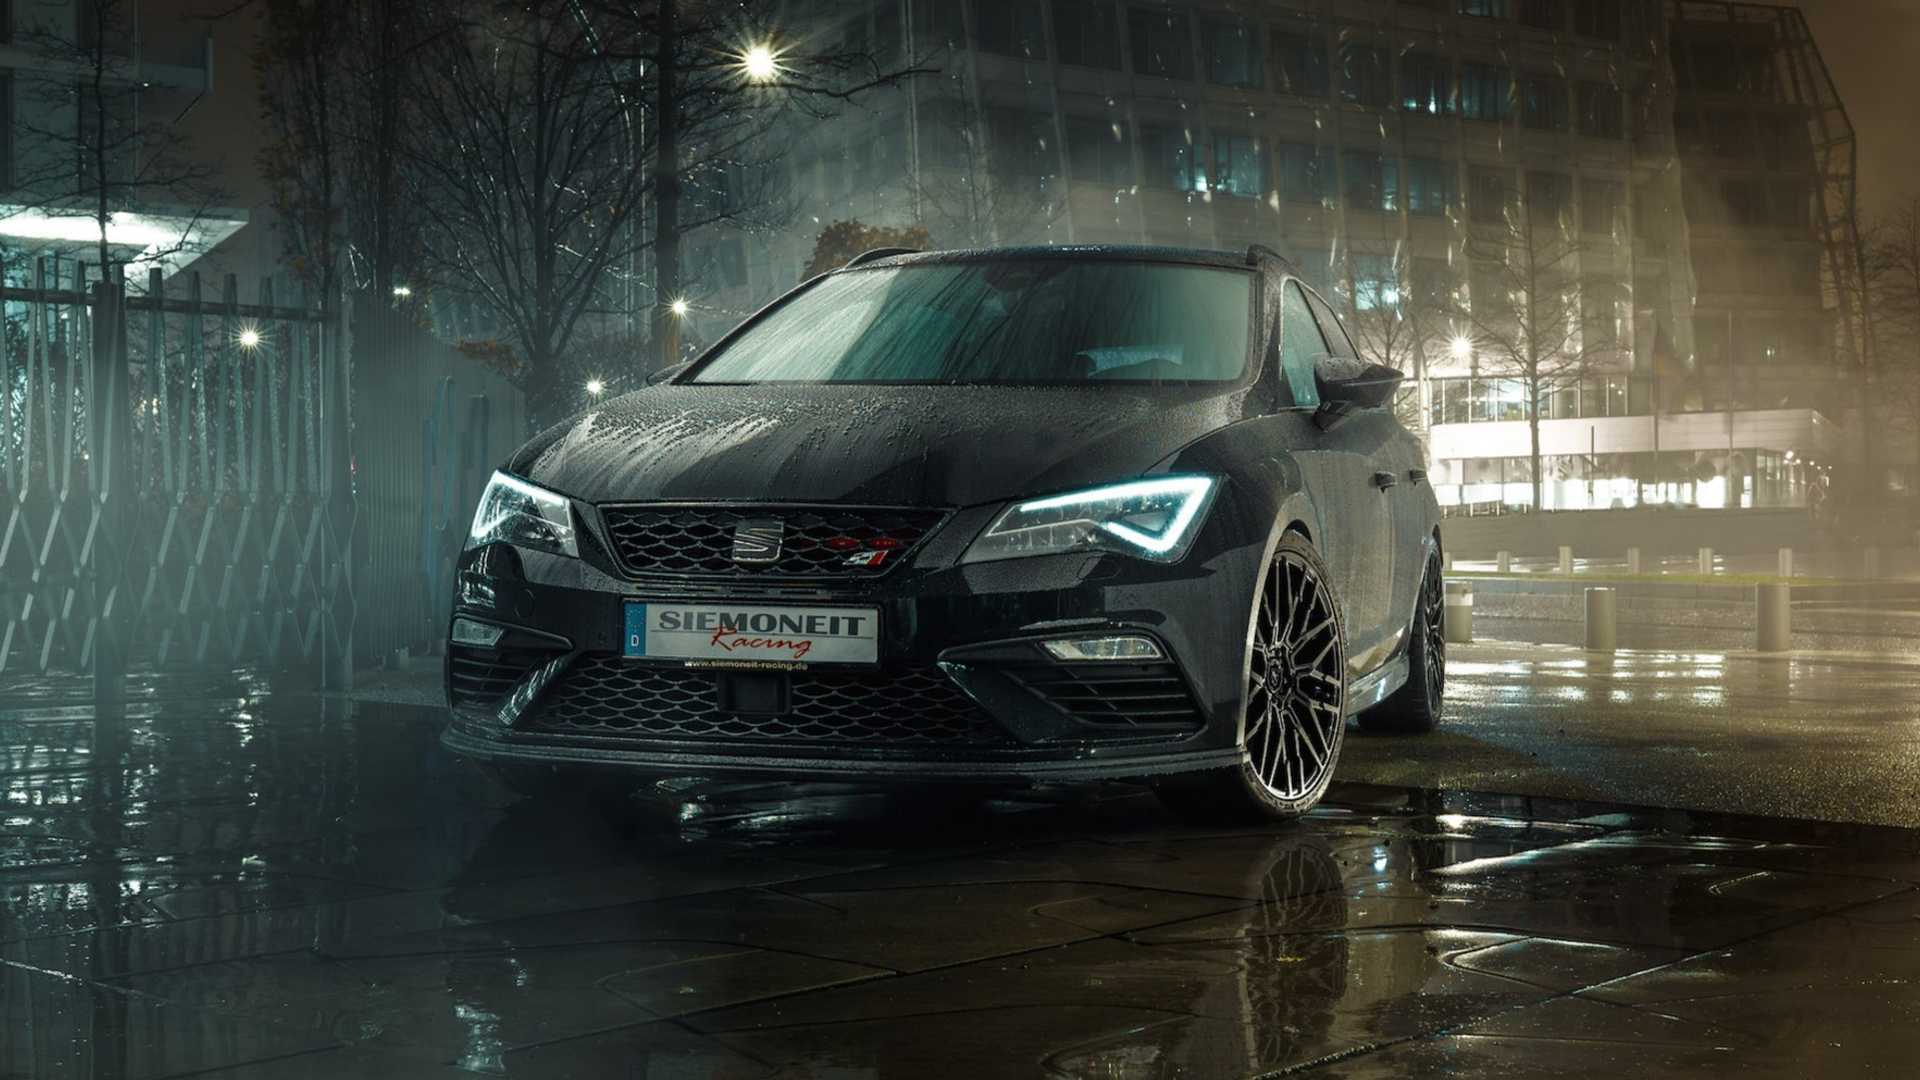 Seat Leon Wallpapers Top Free Seat Leon Backgrounds